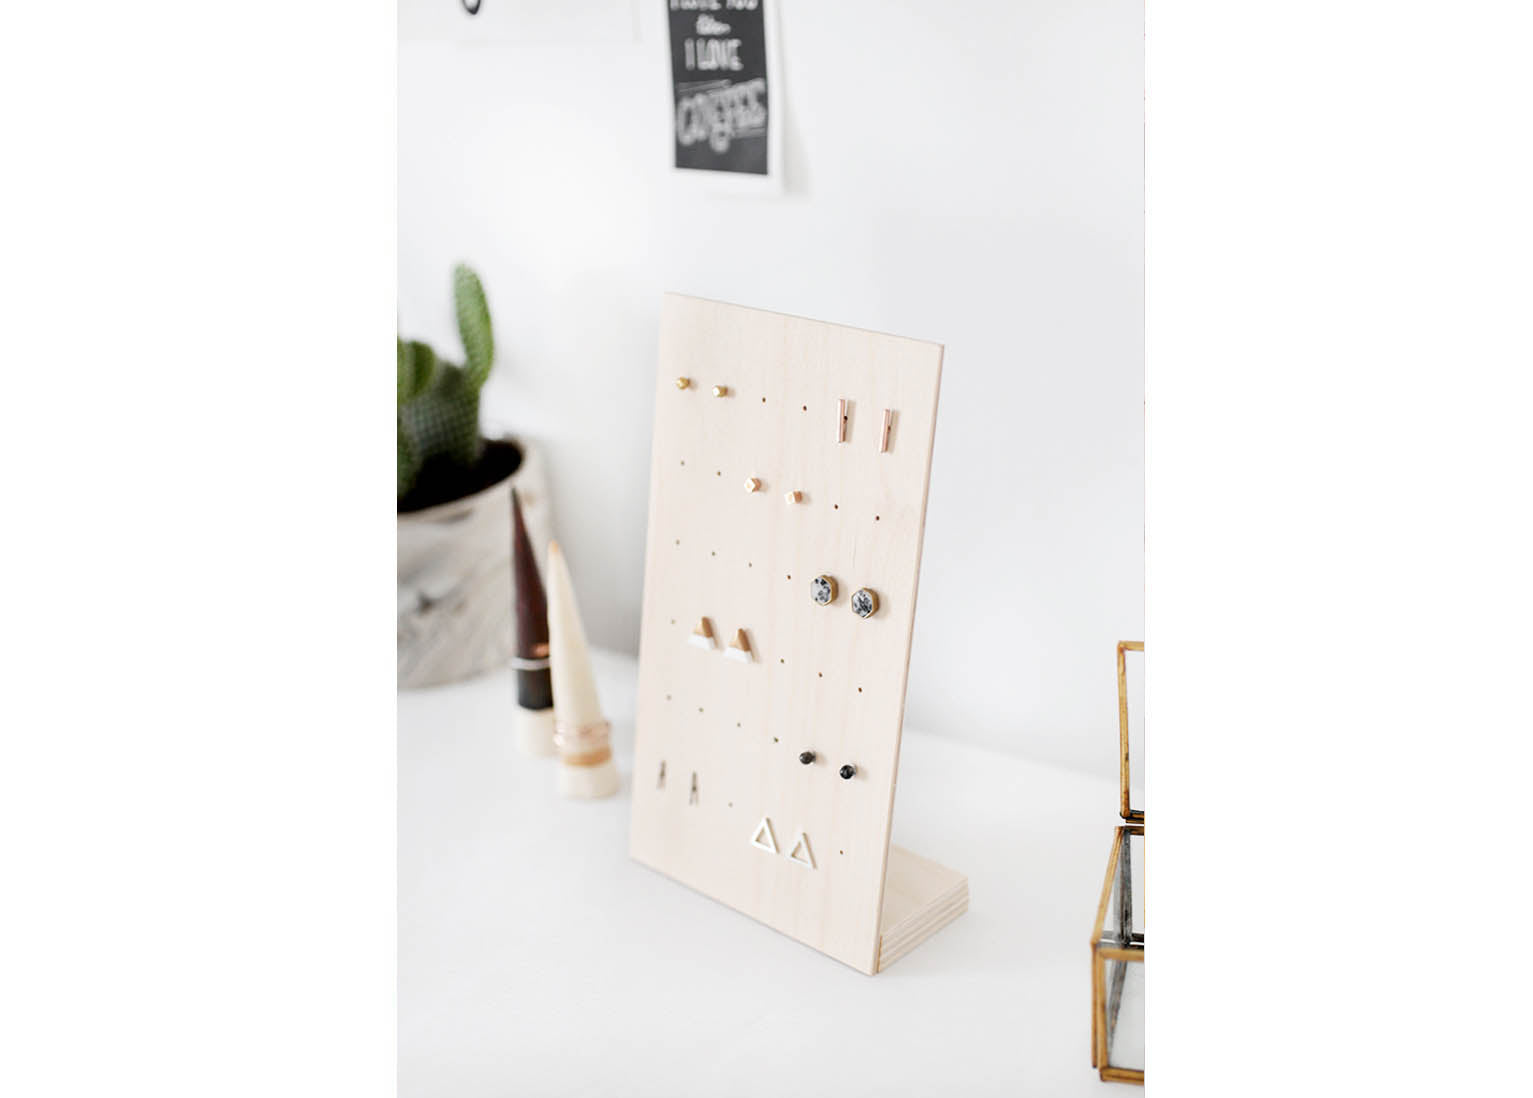 A beautiful photograph of a quirky wooden earring holder/stand.